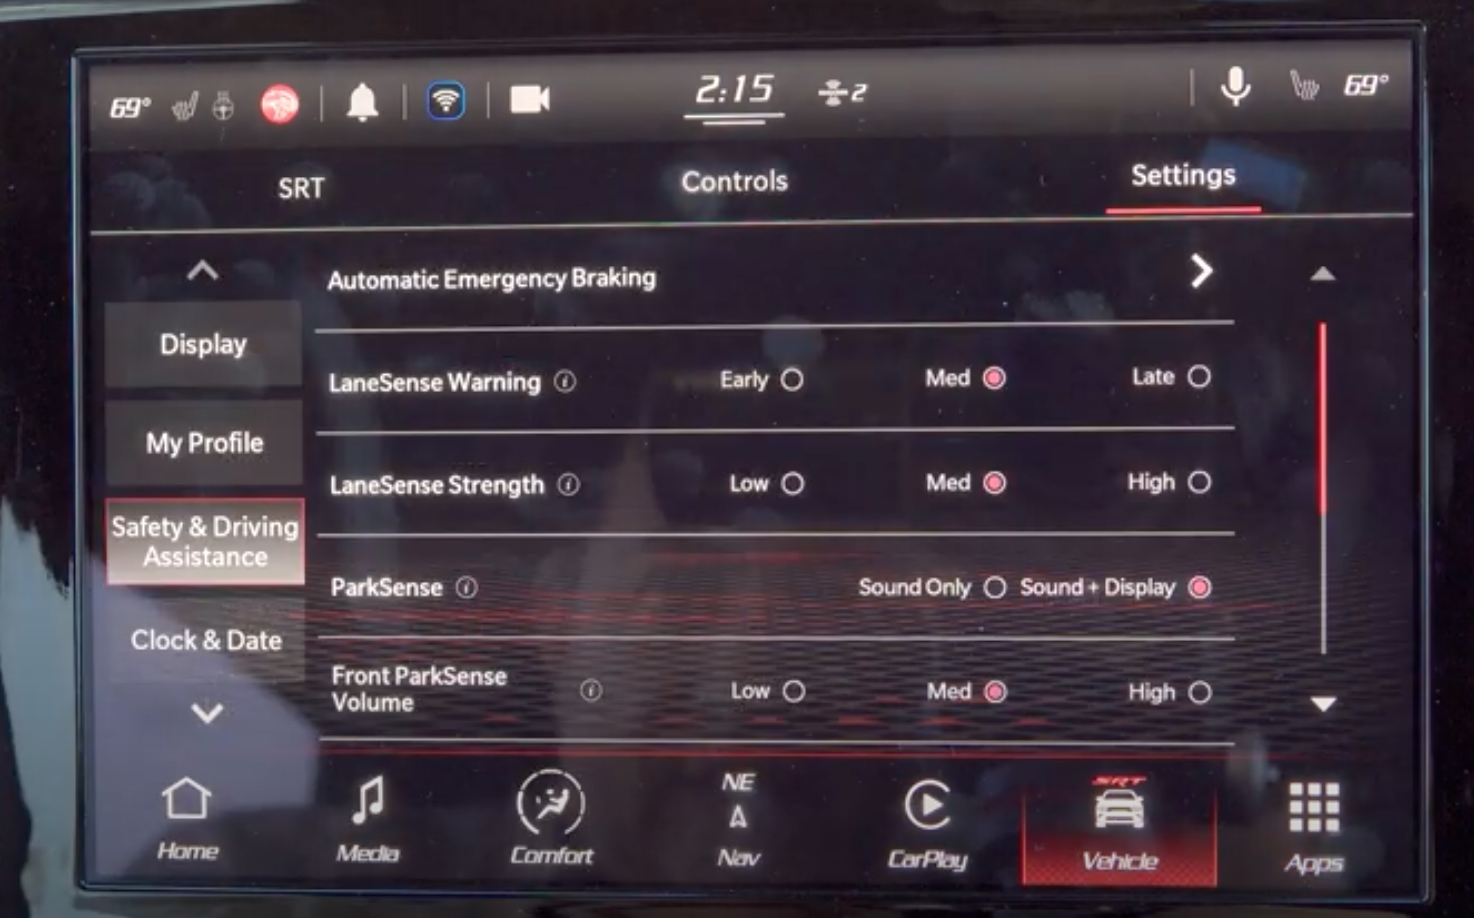 List of various driver assistance settings and turning them on and off with digital buttons